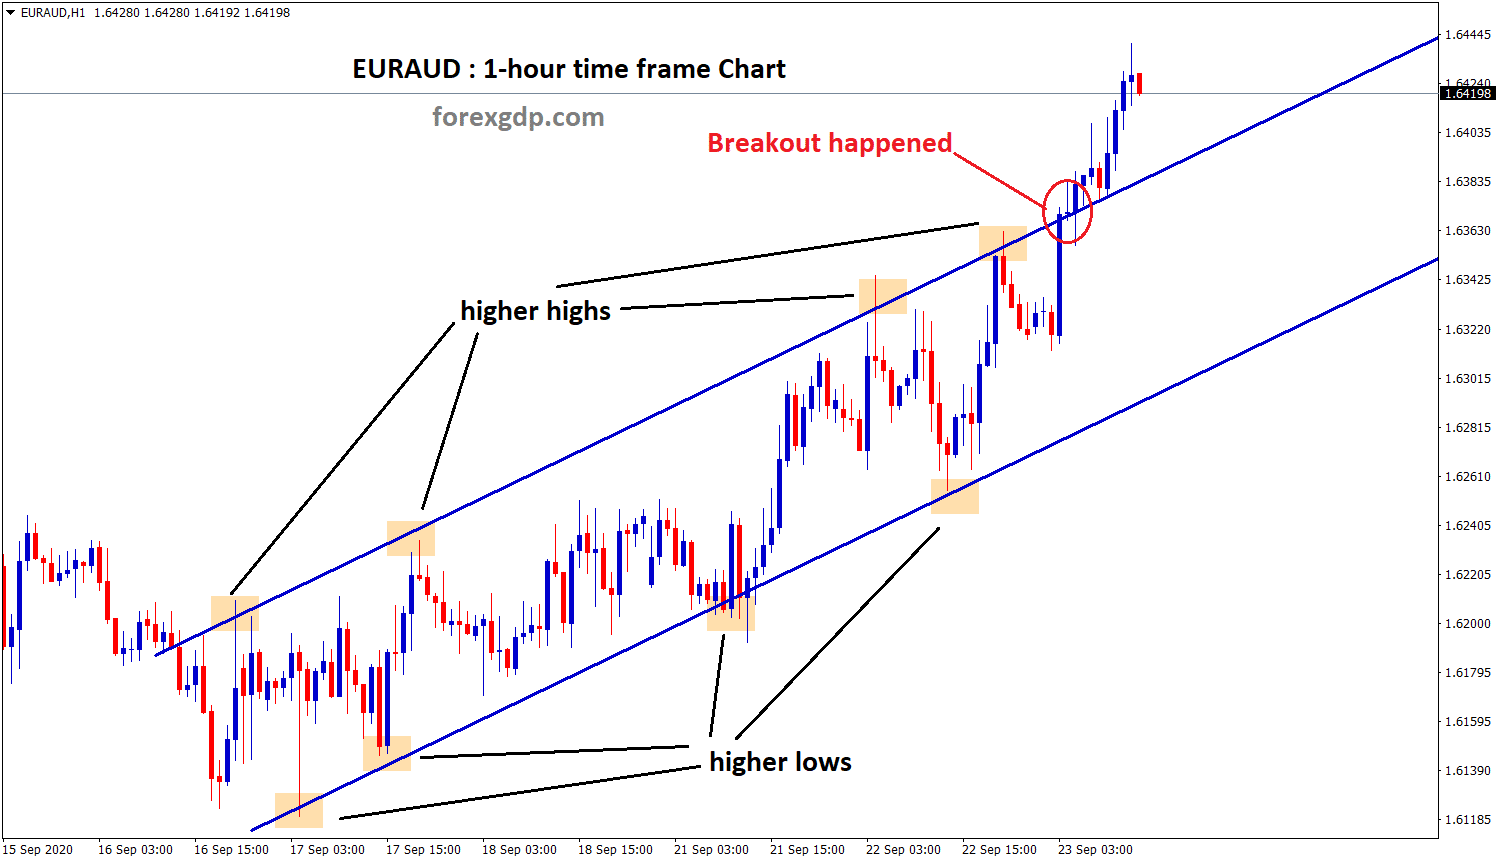 euraud broken the top of the Ascending channel